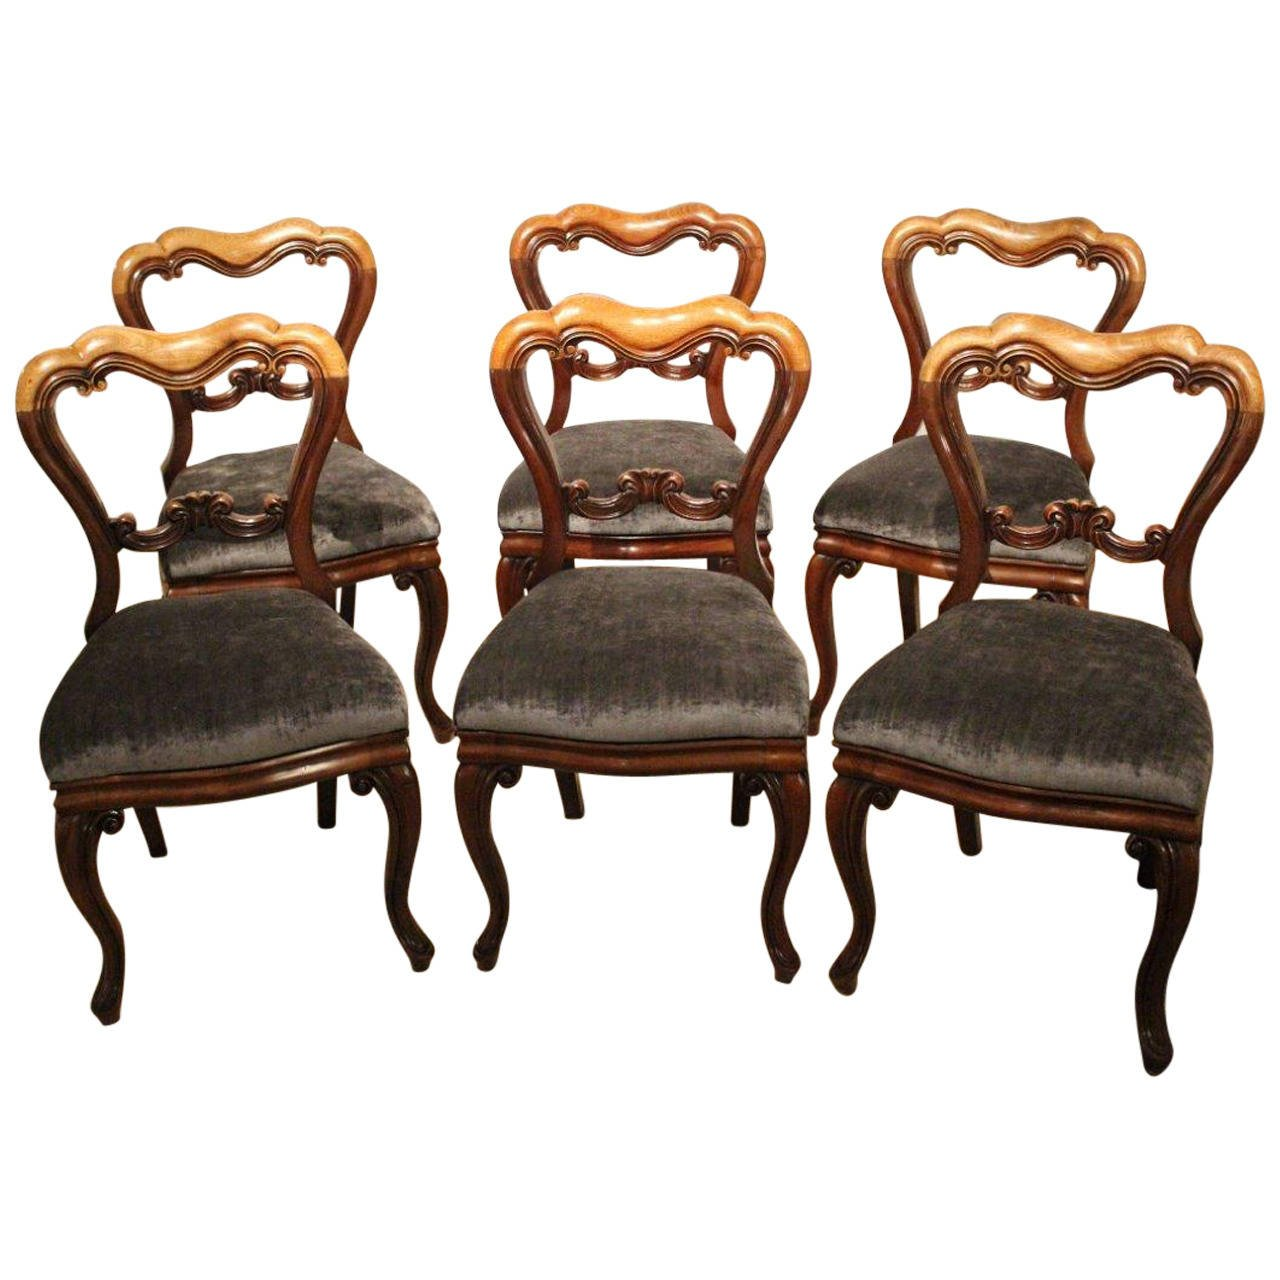 [Buying Experience] Victorian Era Furniture In eBay - Buying Experience] Victorian Era Furniture In EBay - 14 Wise Choices